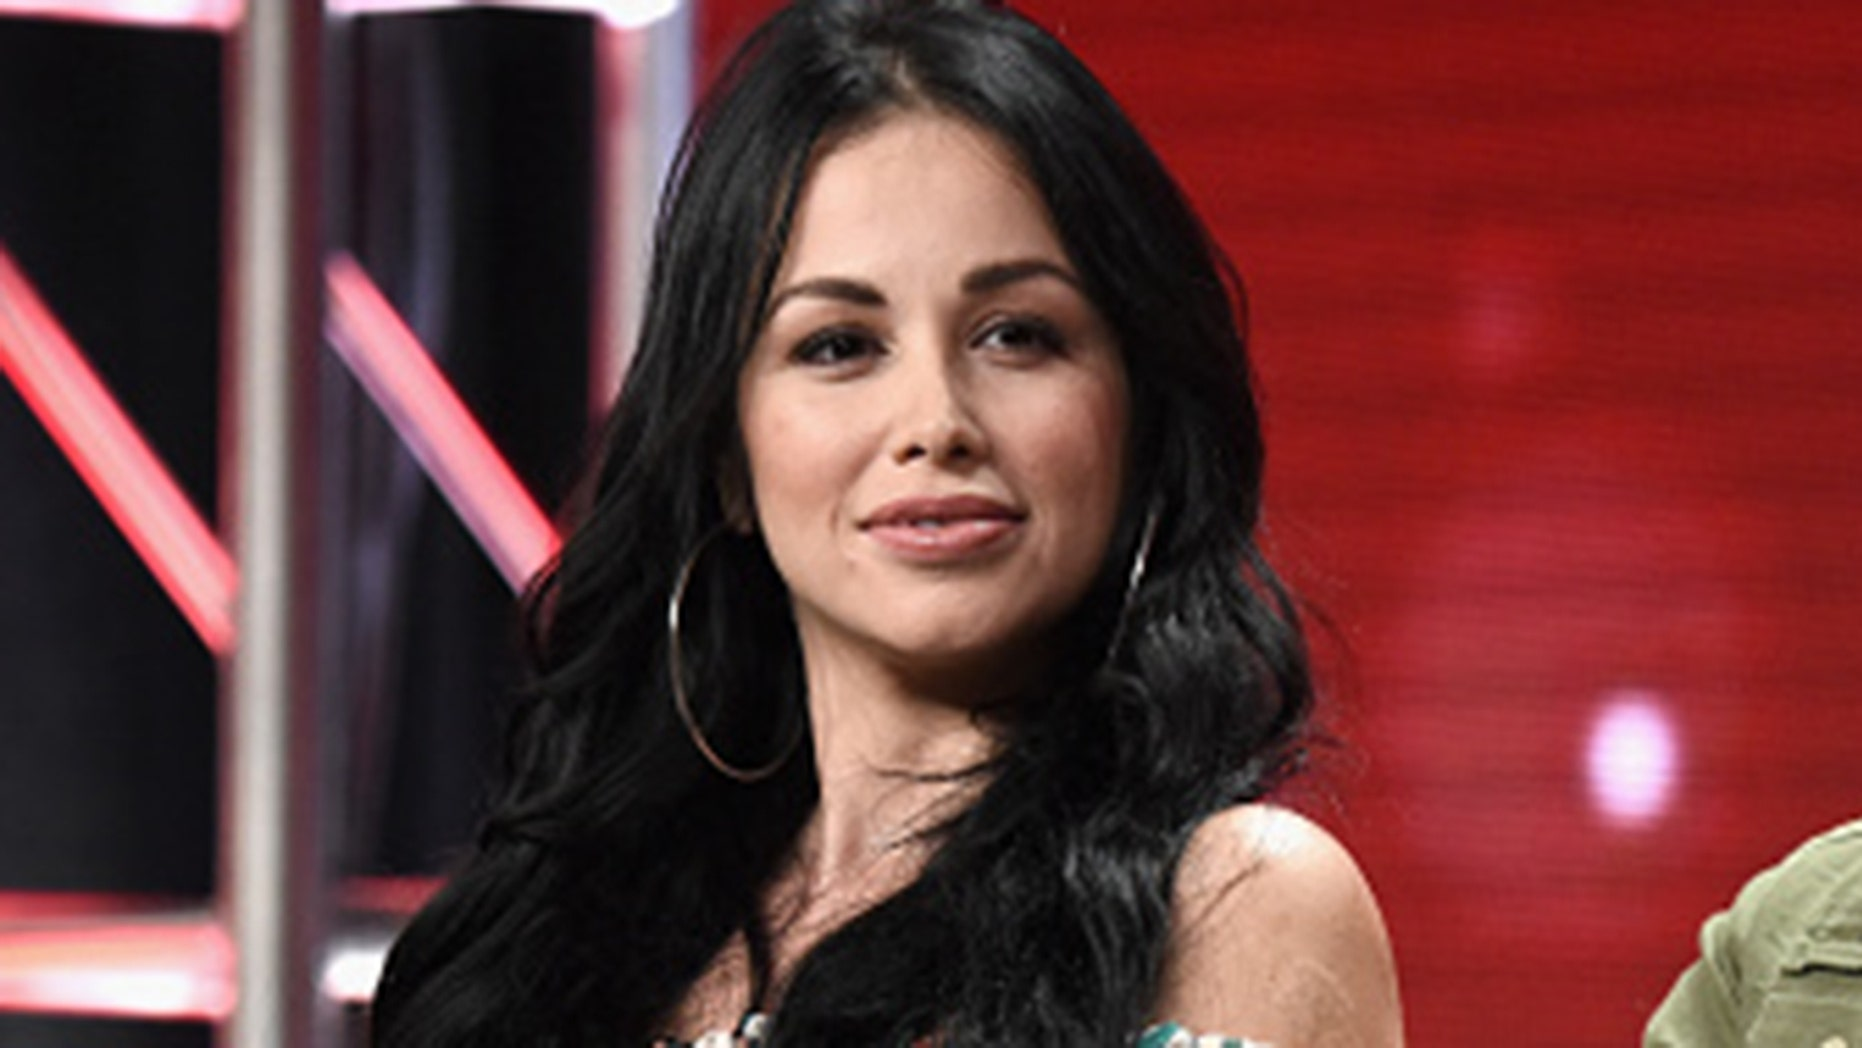 """90 Day Fiance"" star Paola Mayfield is slammed for her risque pregnancy video on social media.  (Photo by Amanda Edwards/Getty Images for Discovery, Inc.)"